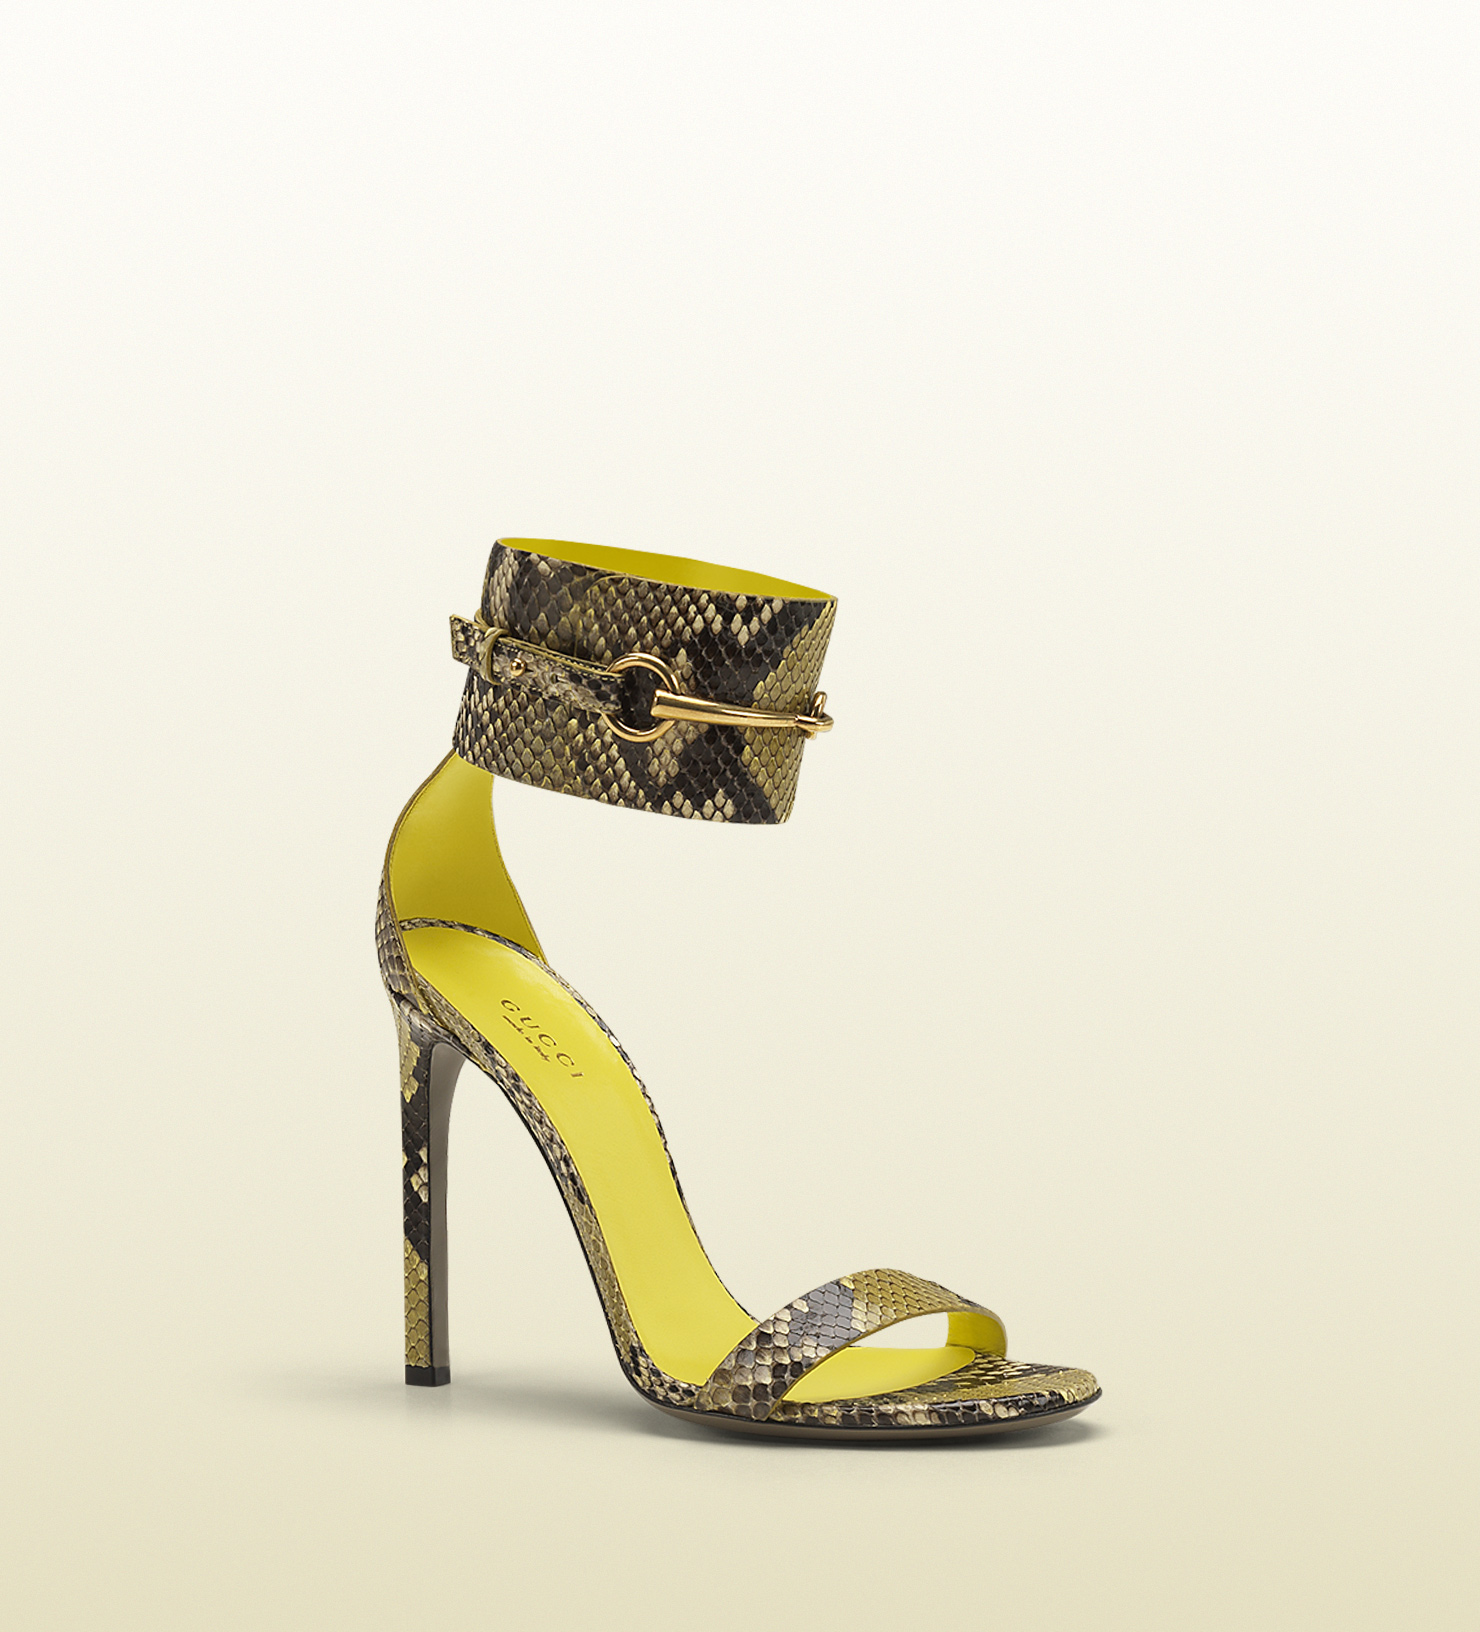 9f7c80d68306 Lyst - Gucci Ursula Anklestrap High Heel Sandal in Yellow